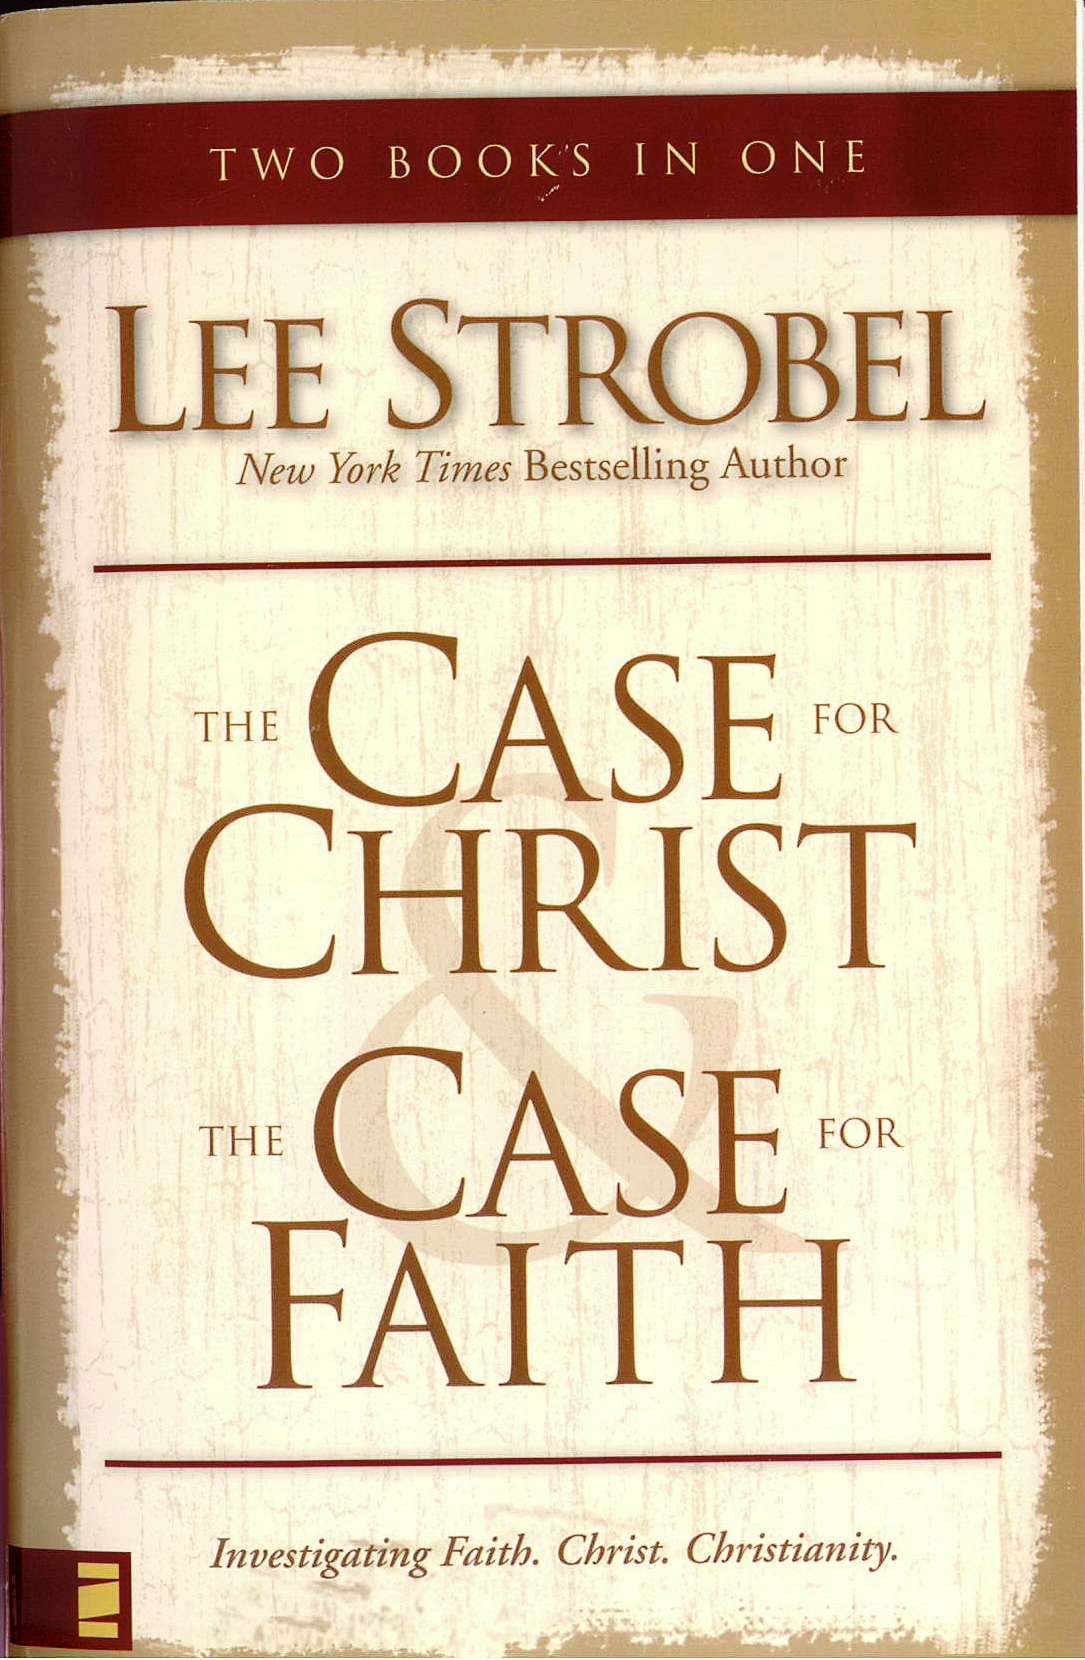 The Case for Christ/The Case for Faith by Lee Strobel